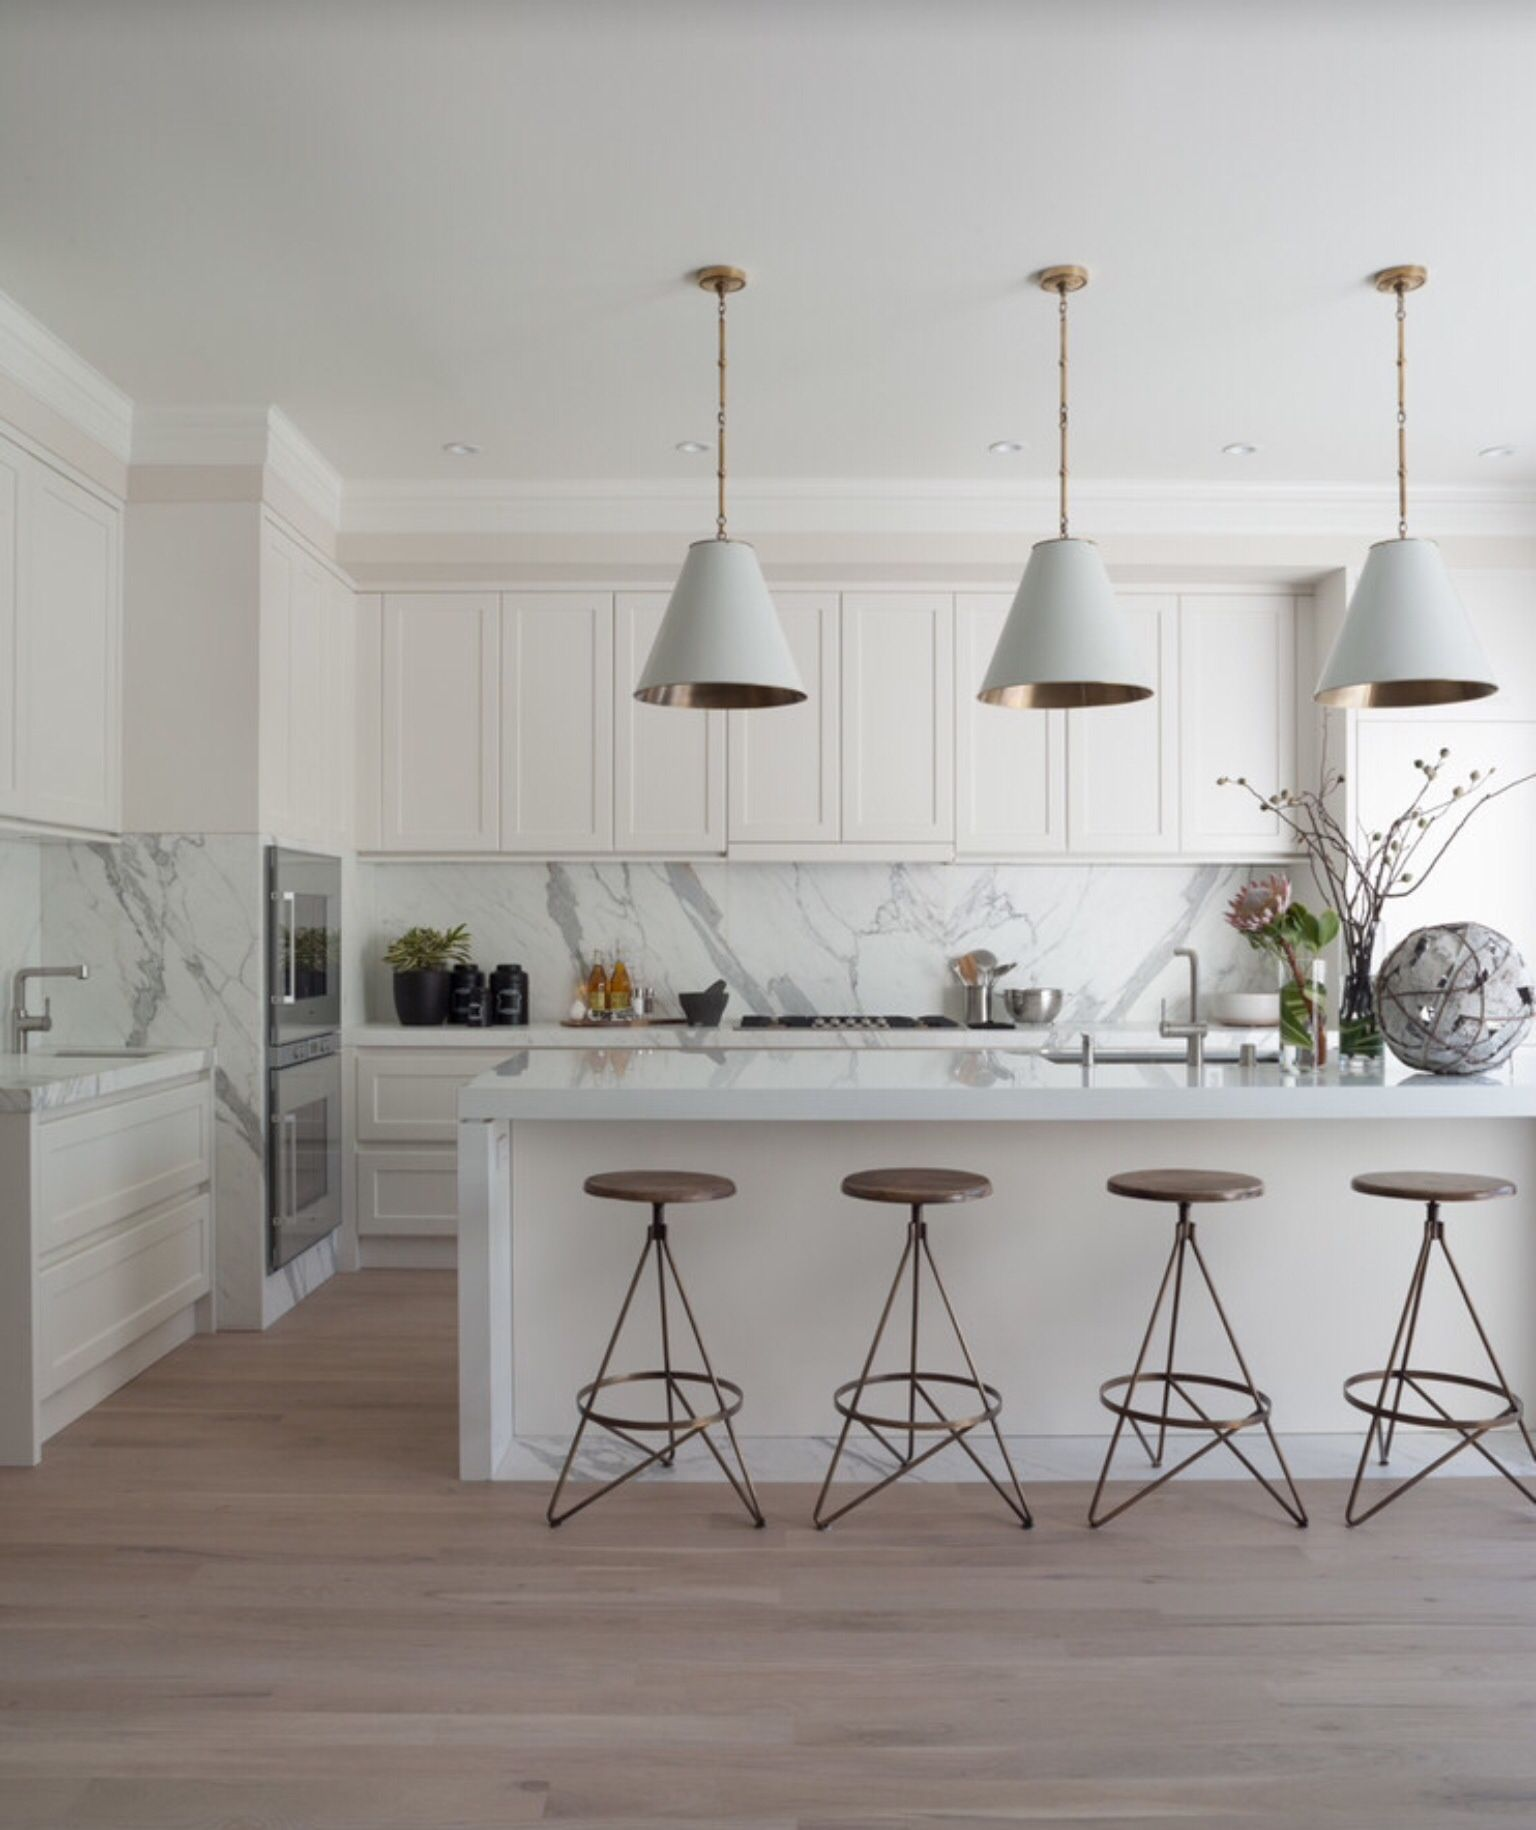 Staging Kitchen Counters: CALCUTTA AND CARRARA KITCHENS